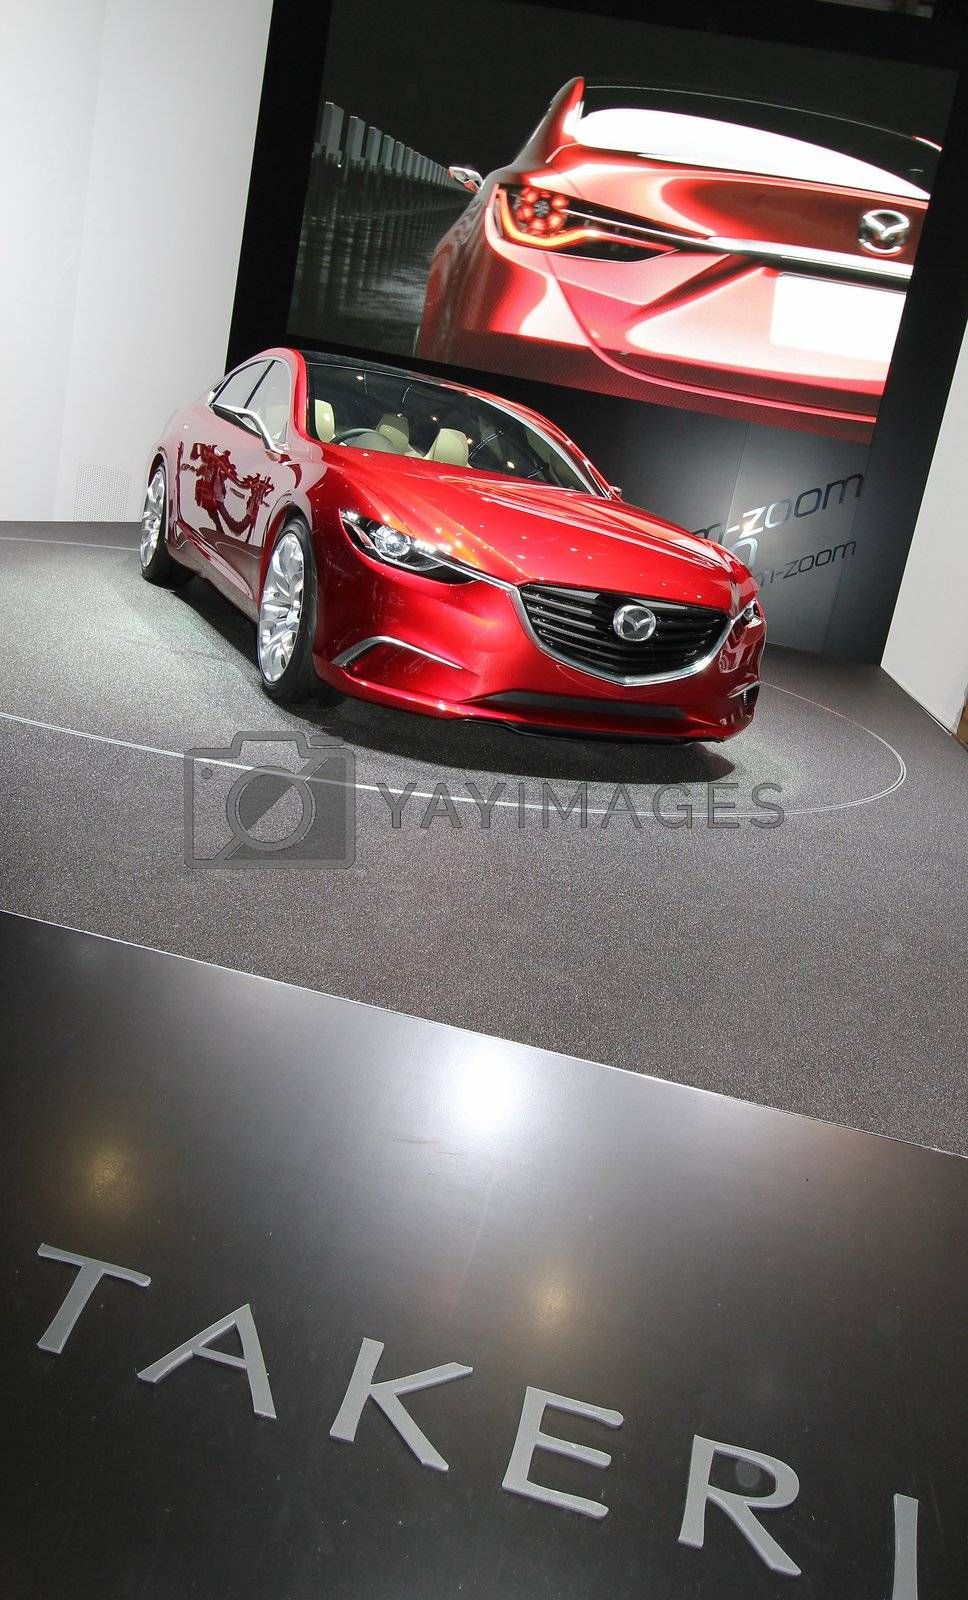 GENEVA - MARCH 16 : The Mazda Takeri concept on display at the 82nd International Motor Show Palexpo -Geneva on March 16; 2012 in Geneva, Switzerland.